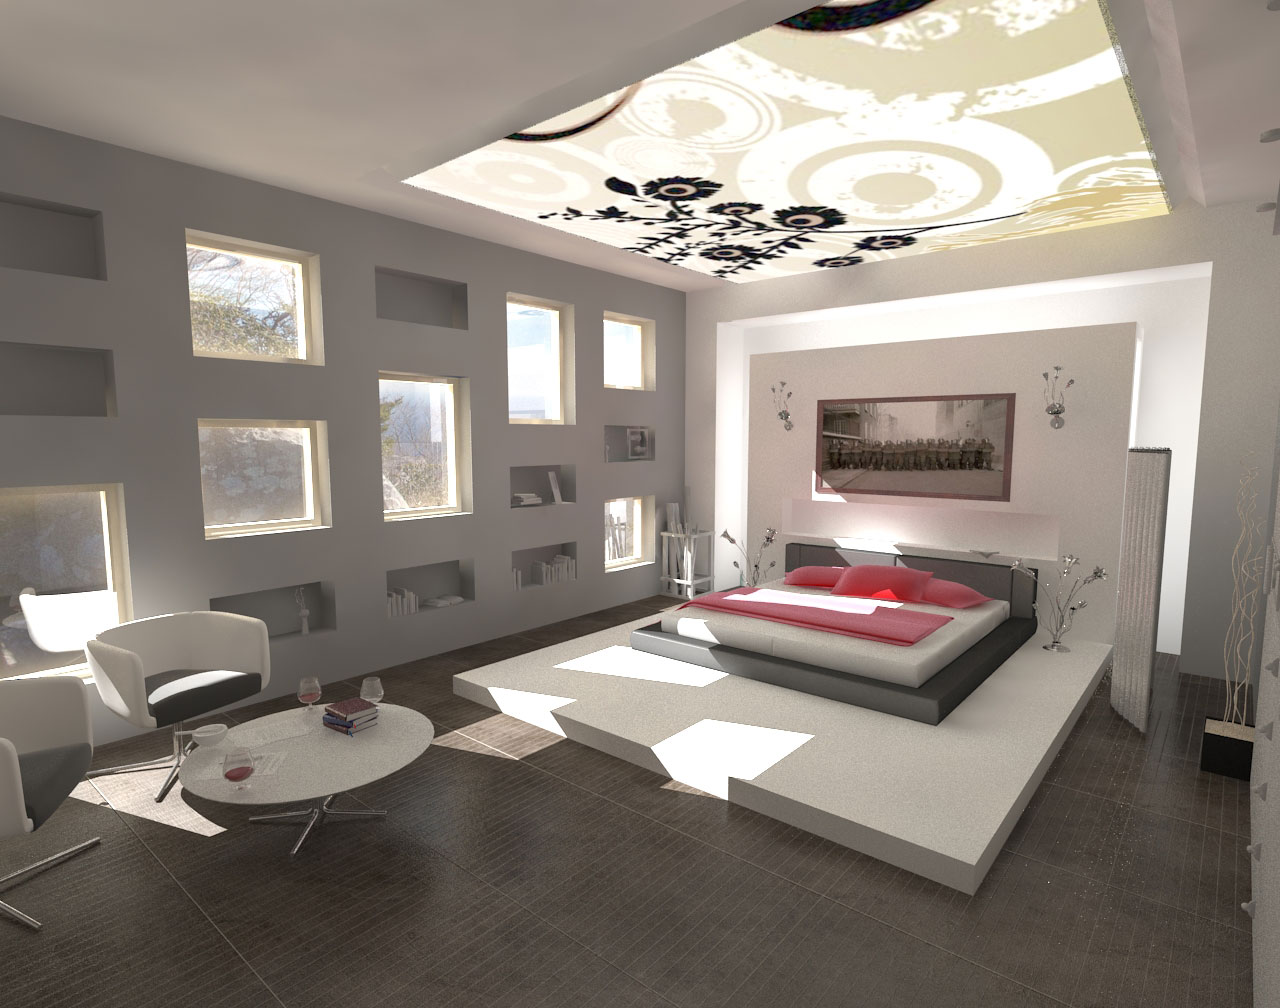 Decorations minimalist design modern bedroom interior for Contemporary home interior design